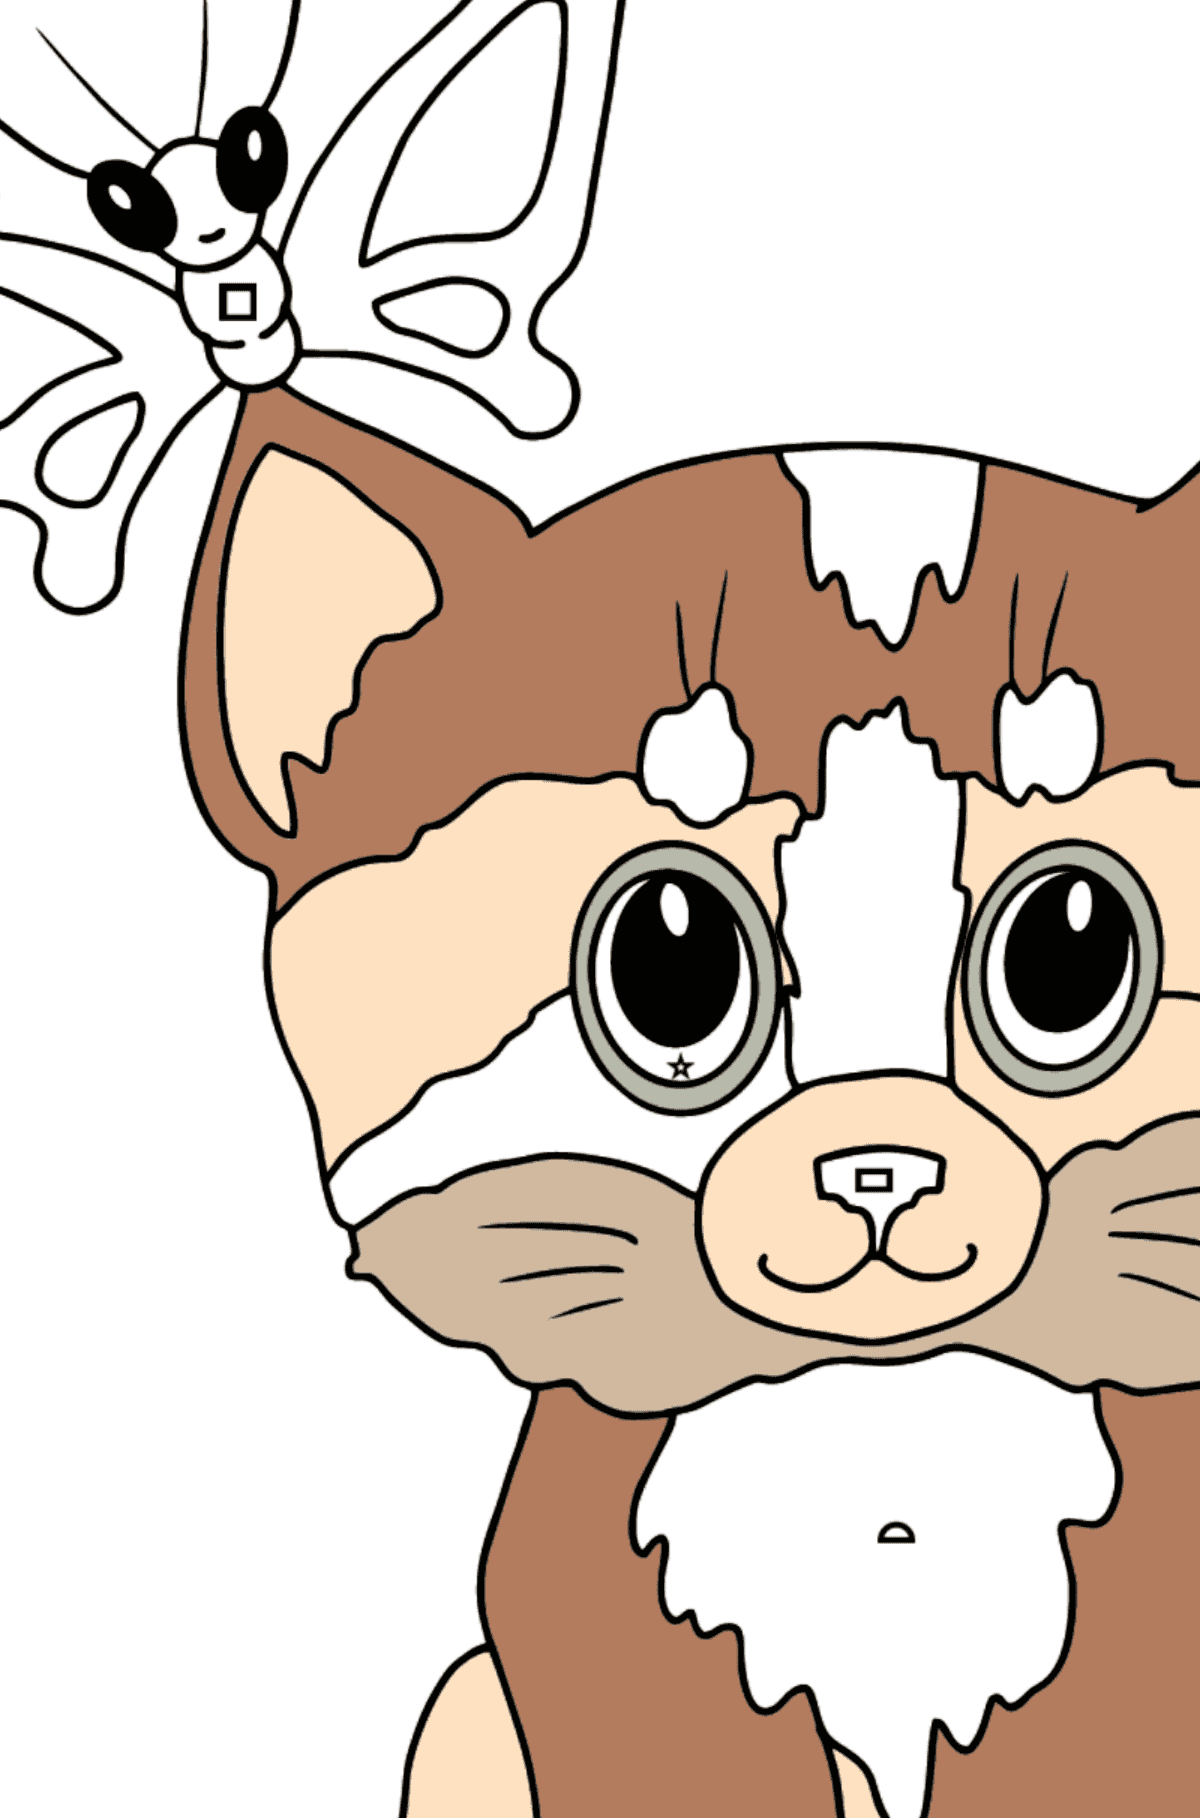 Coloring Page - A Kitten has Caught a Butterfly - Coloring by Geometric Shapes for Kids